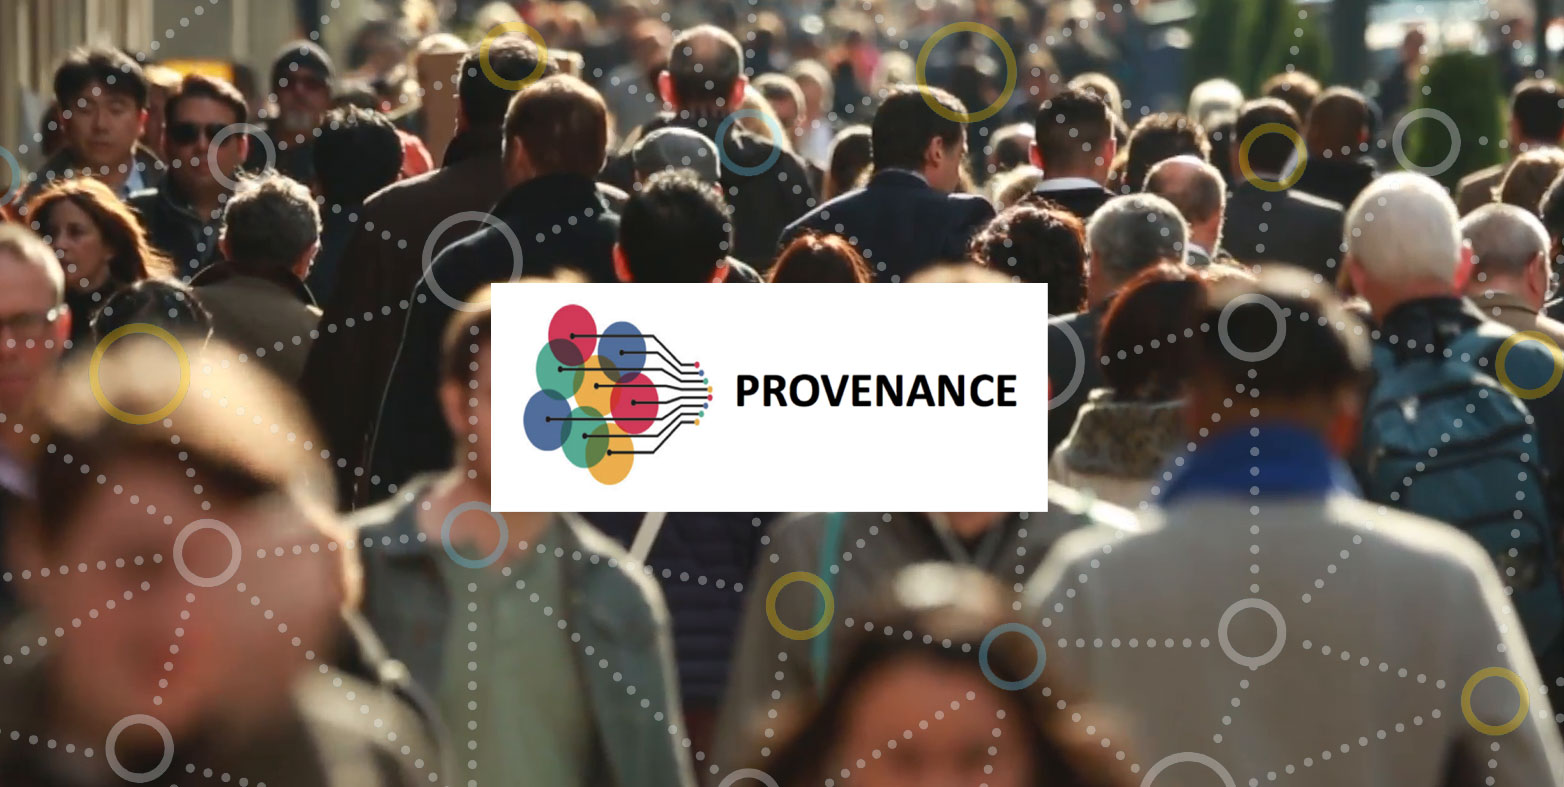 PROVENANCE: the impact of Content verification grounded in trust, openness, and citizen participation to detect fake news